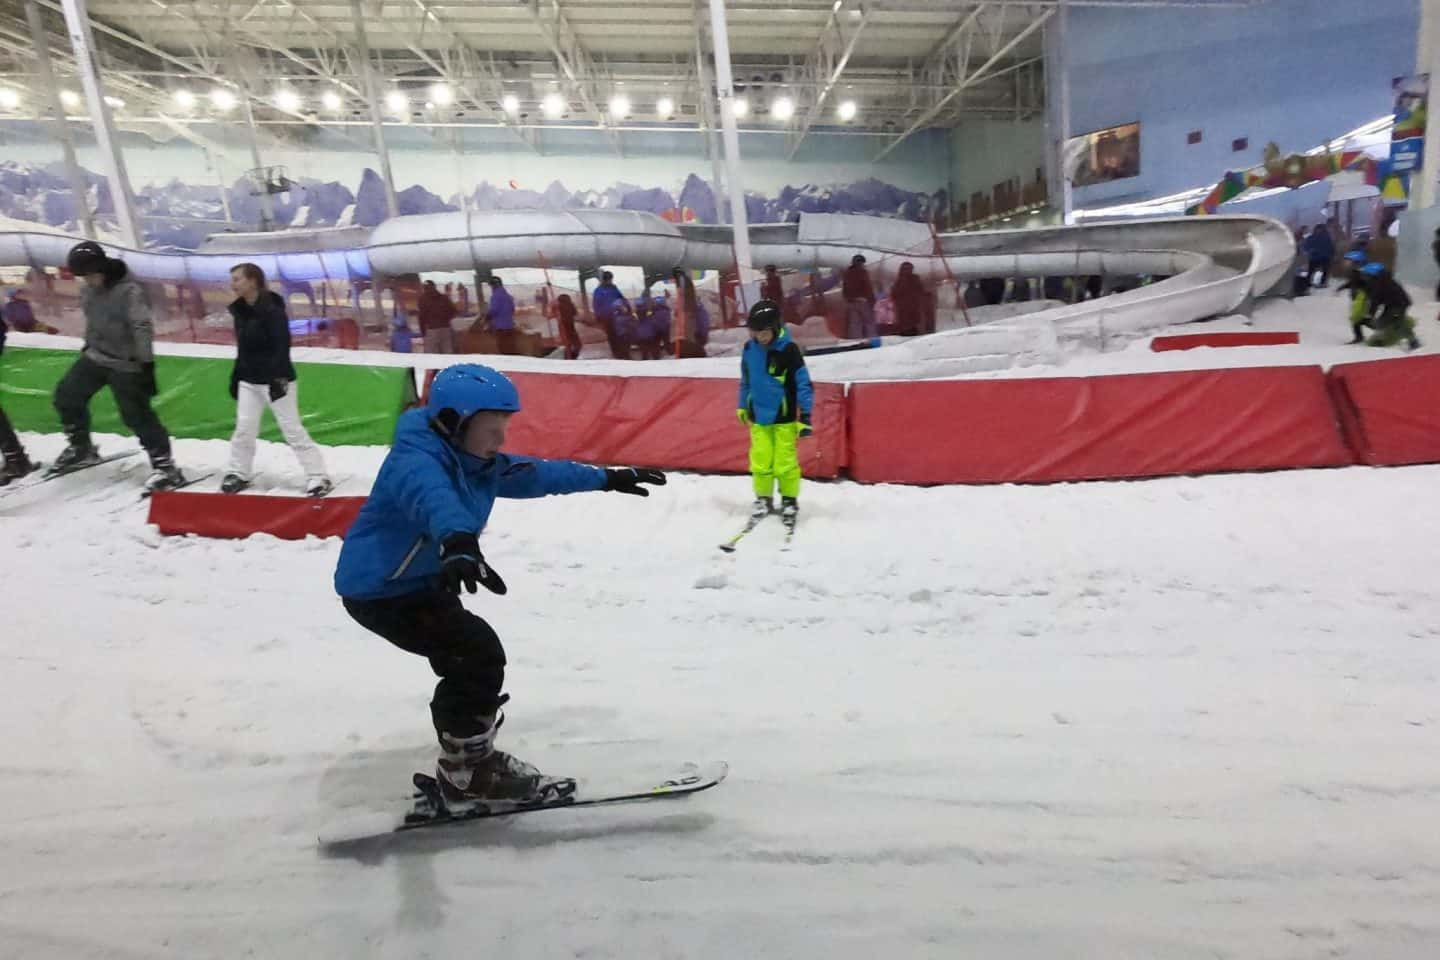 learning to ski at Chill Factore, Beyond